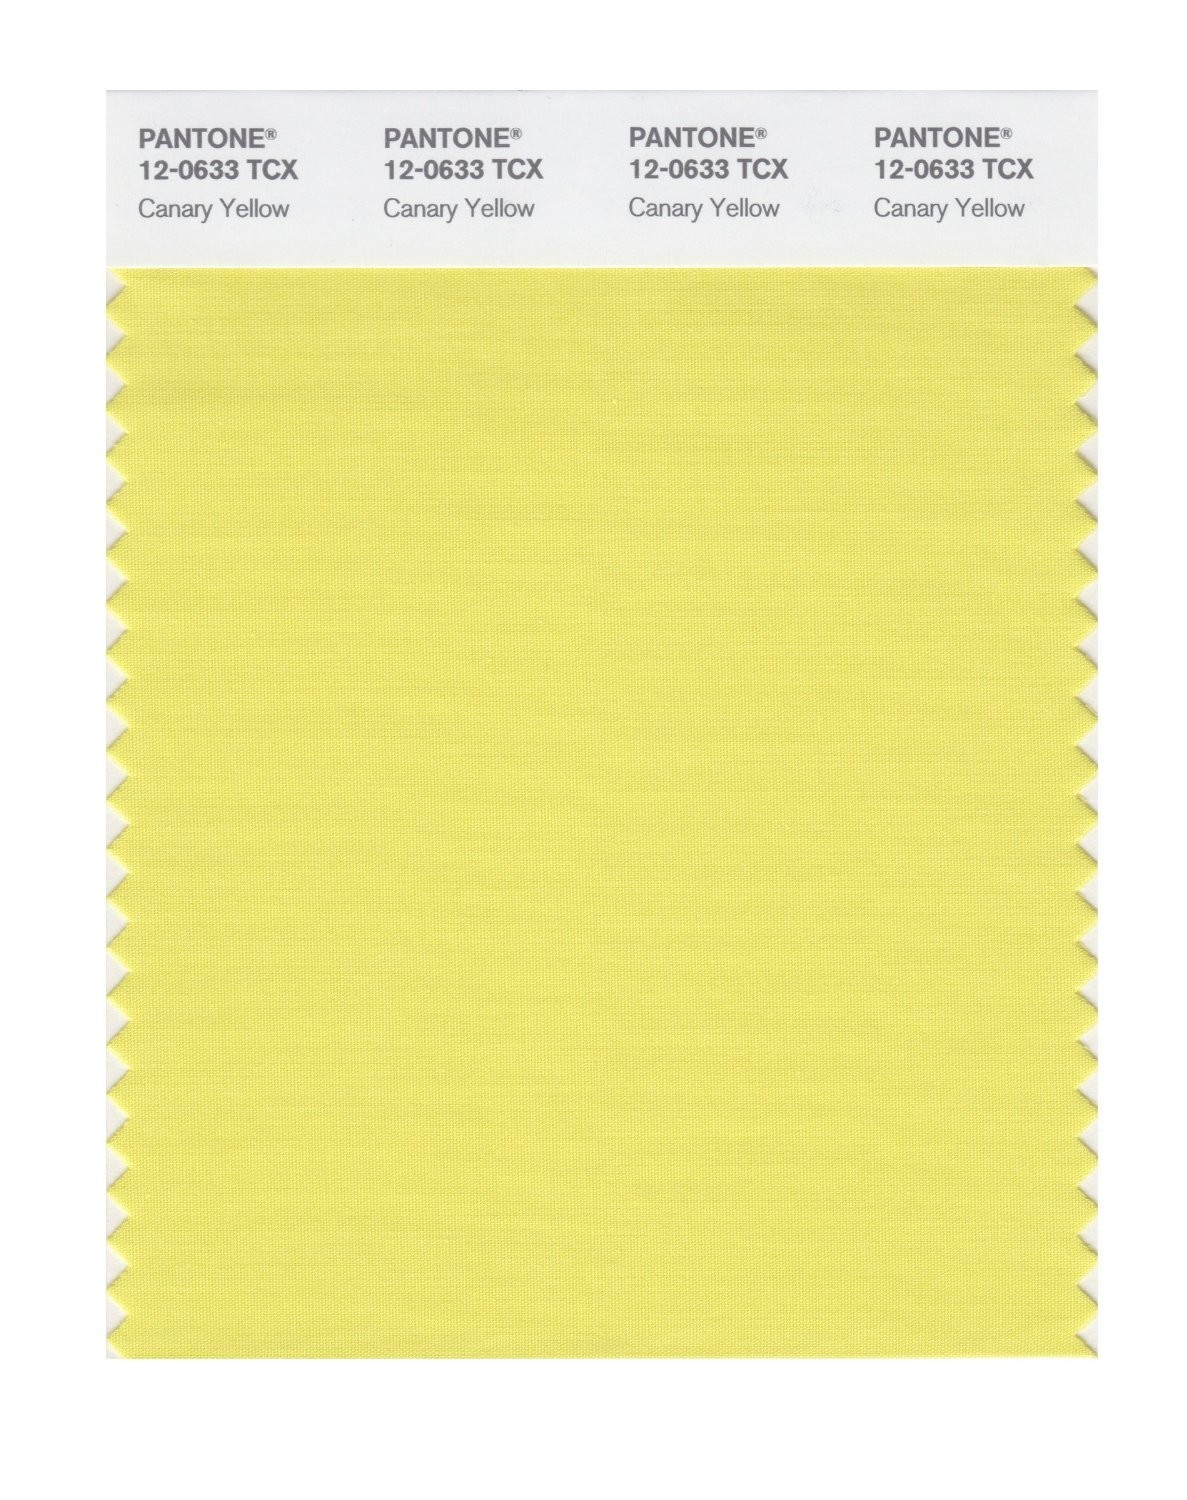 Pantone 12-0633 TCX Swatch Card Canary Yellow